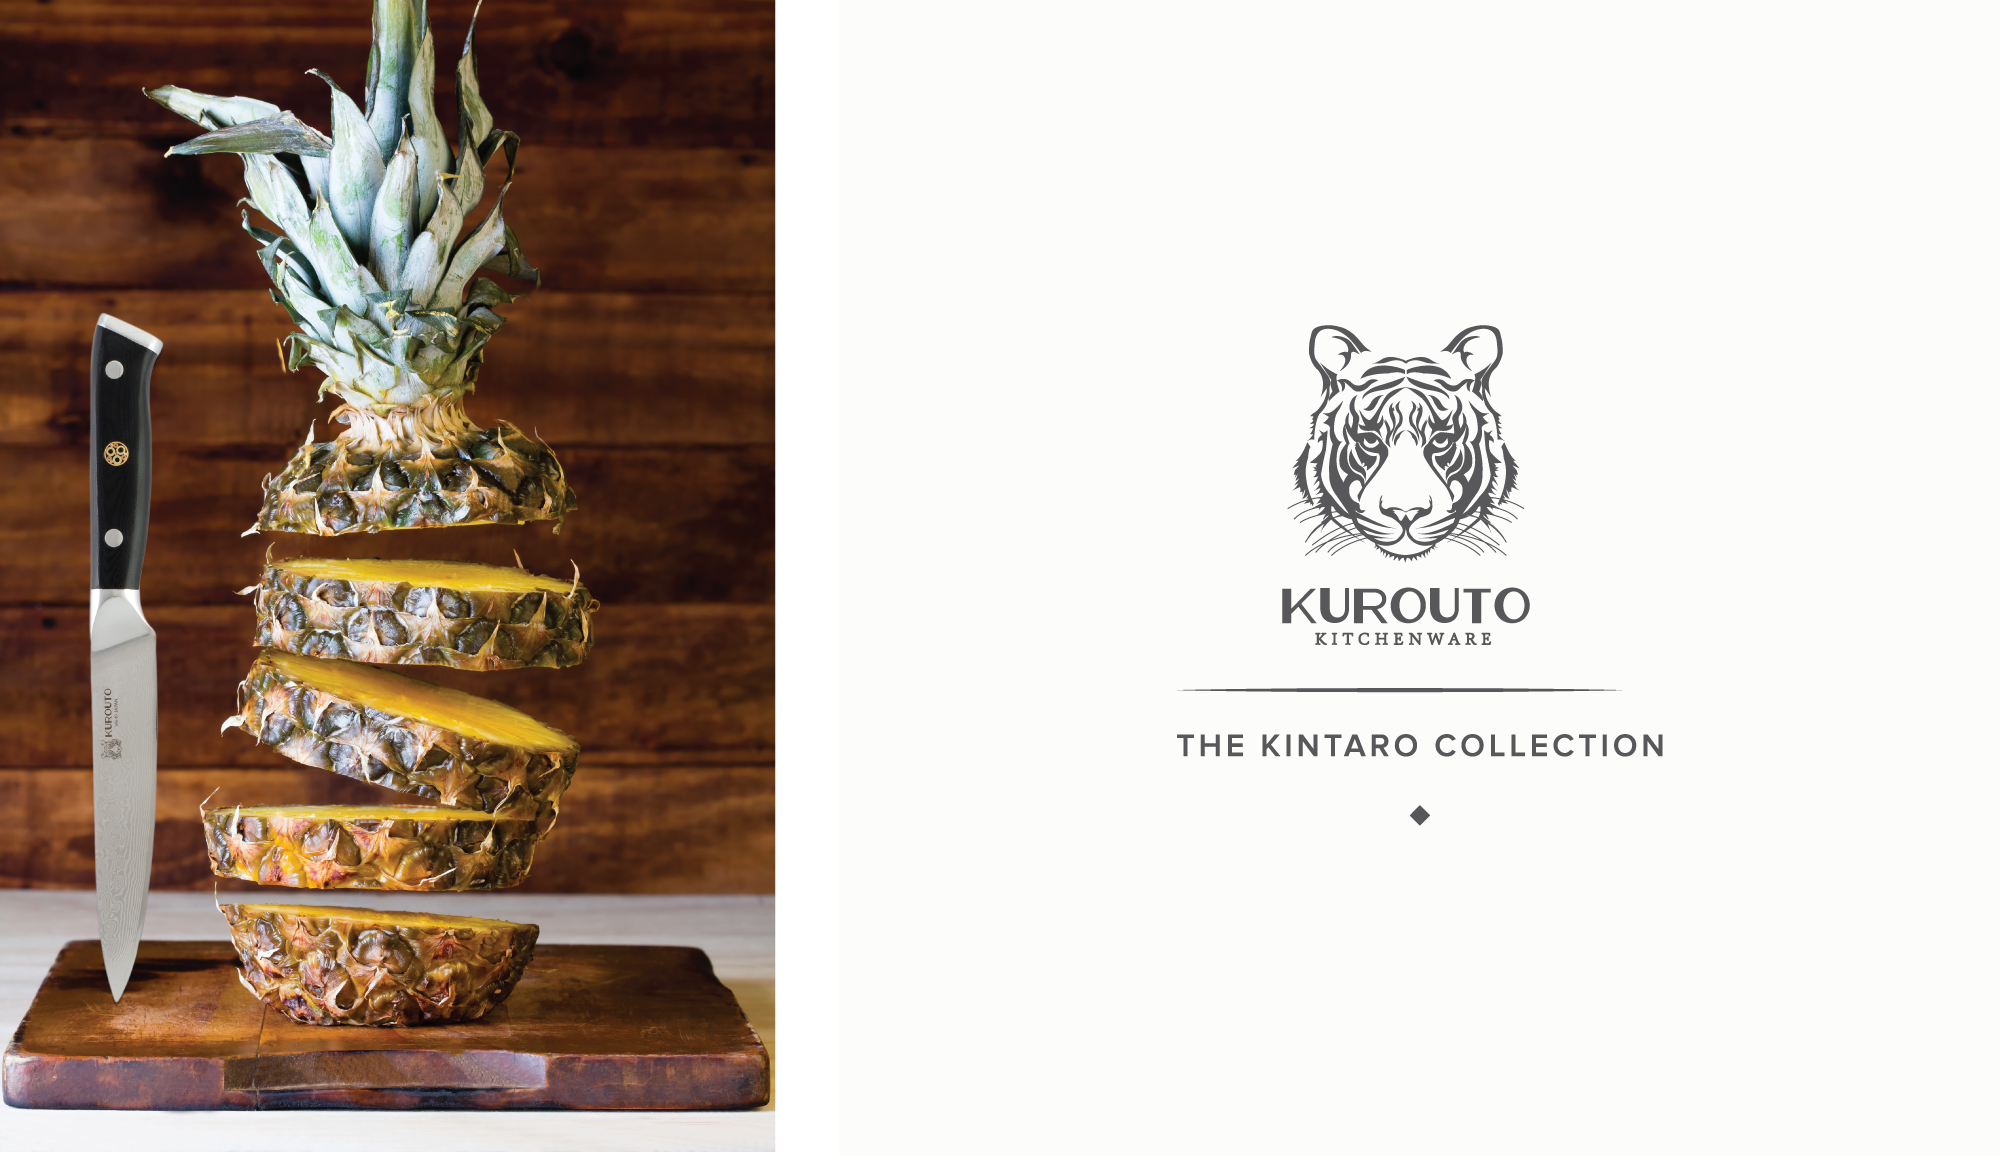 Kurouto Kitchenware Logo and Utility Knife Slicing a Pineapple